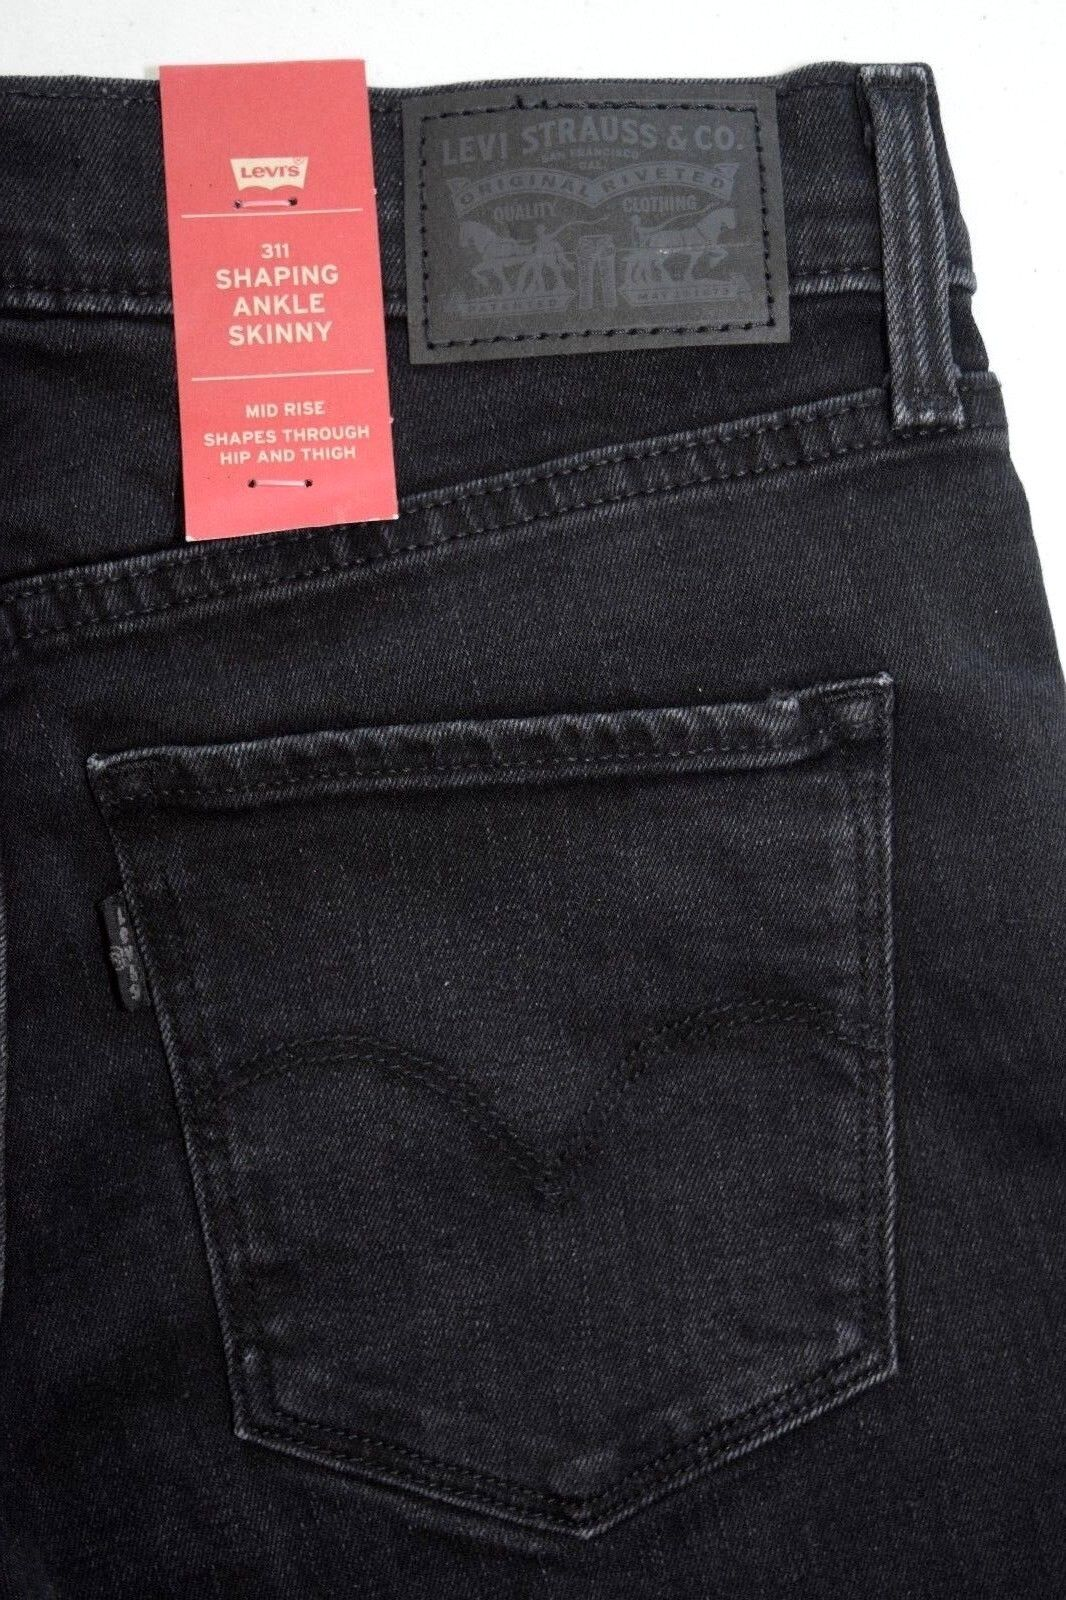 DARK Levi's 311 SHAPING ANKLE SKINNY Women's Jeans 362650002